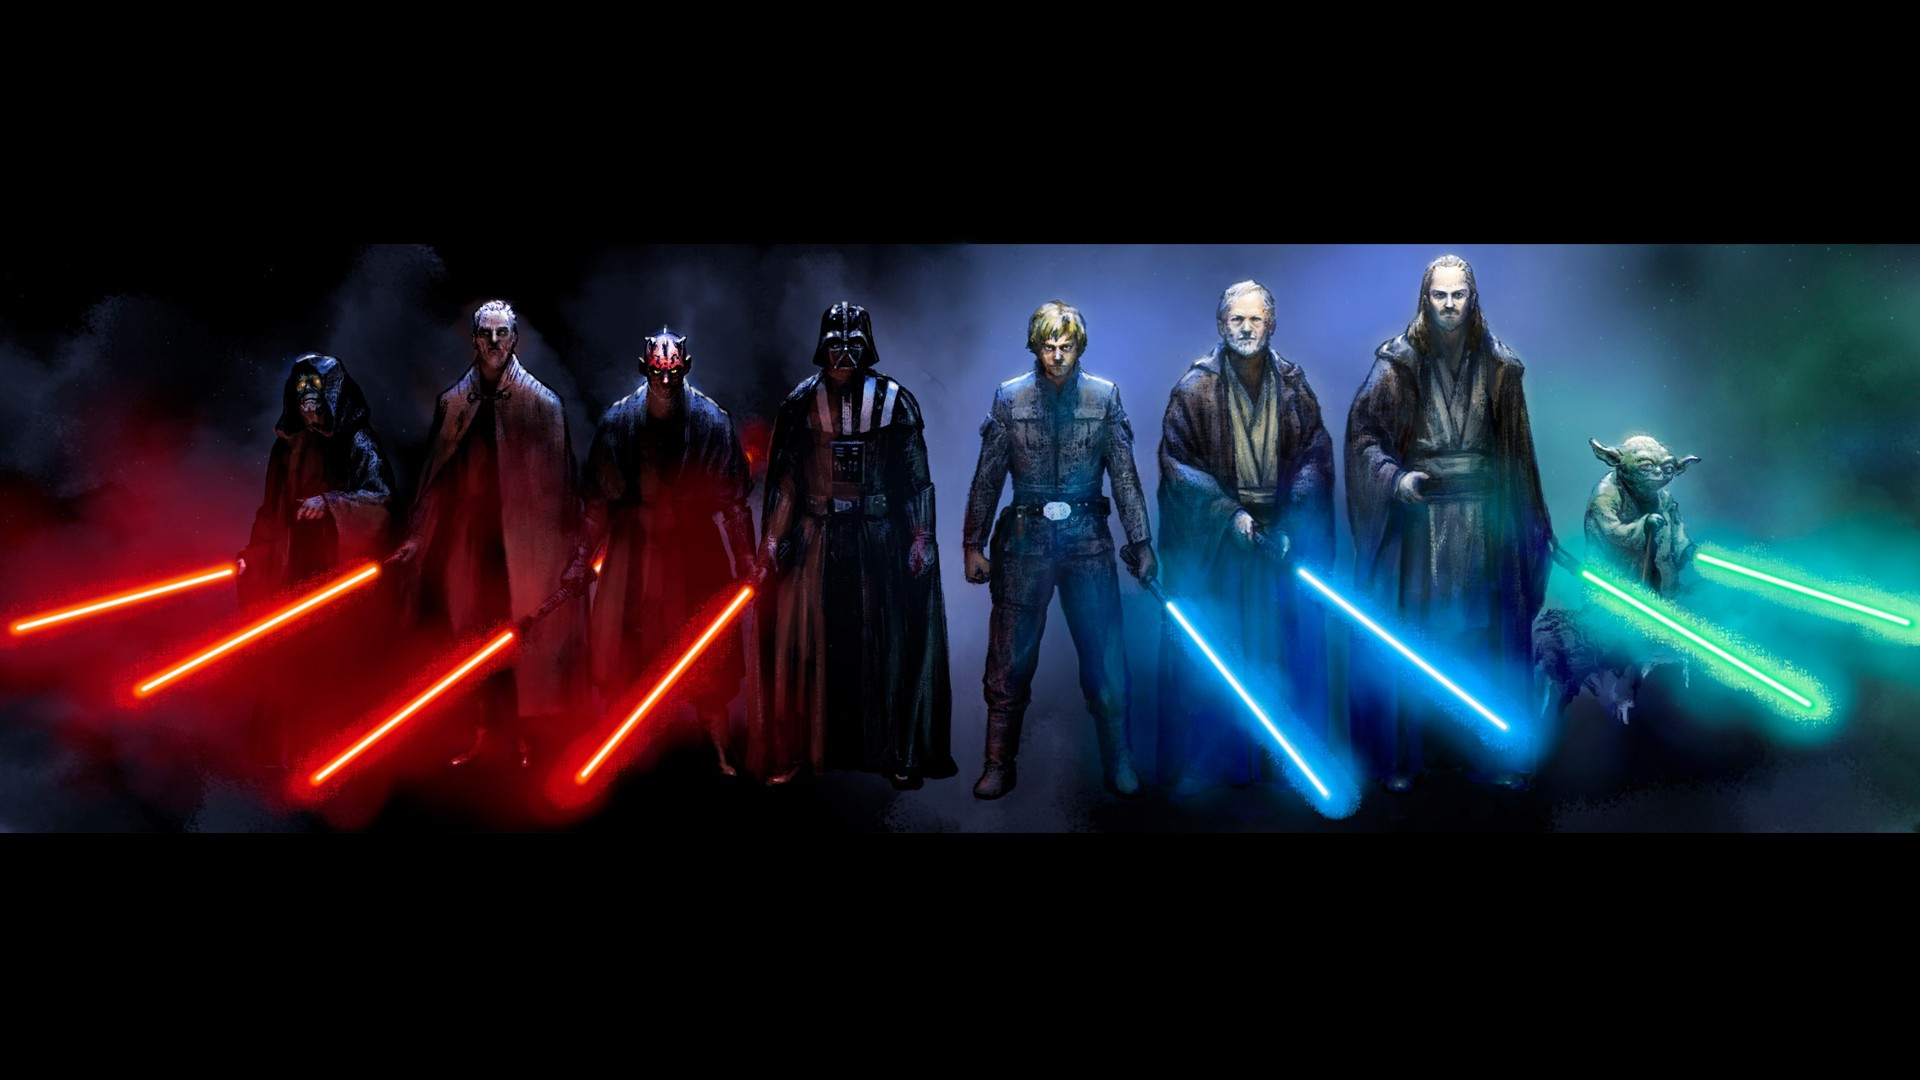 Star Wars Jedi Vs Sith 1920x1080